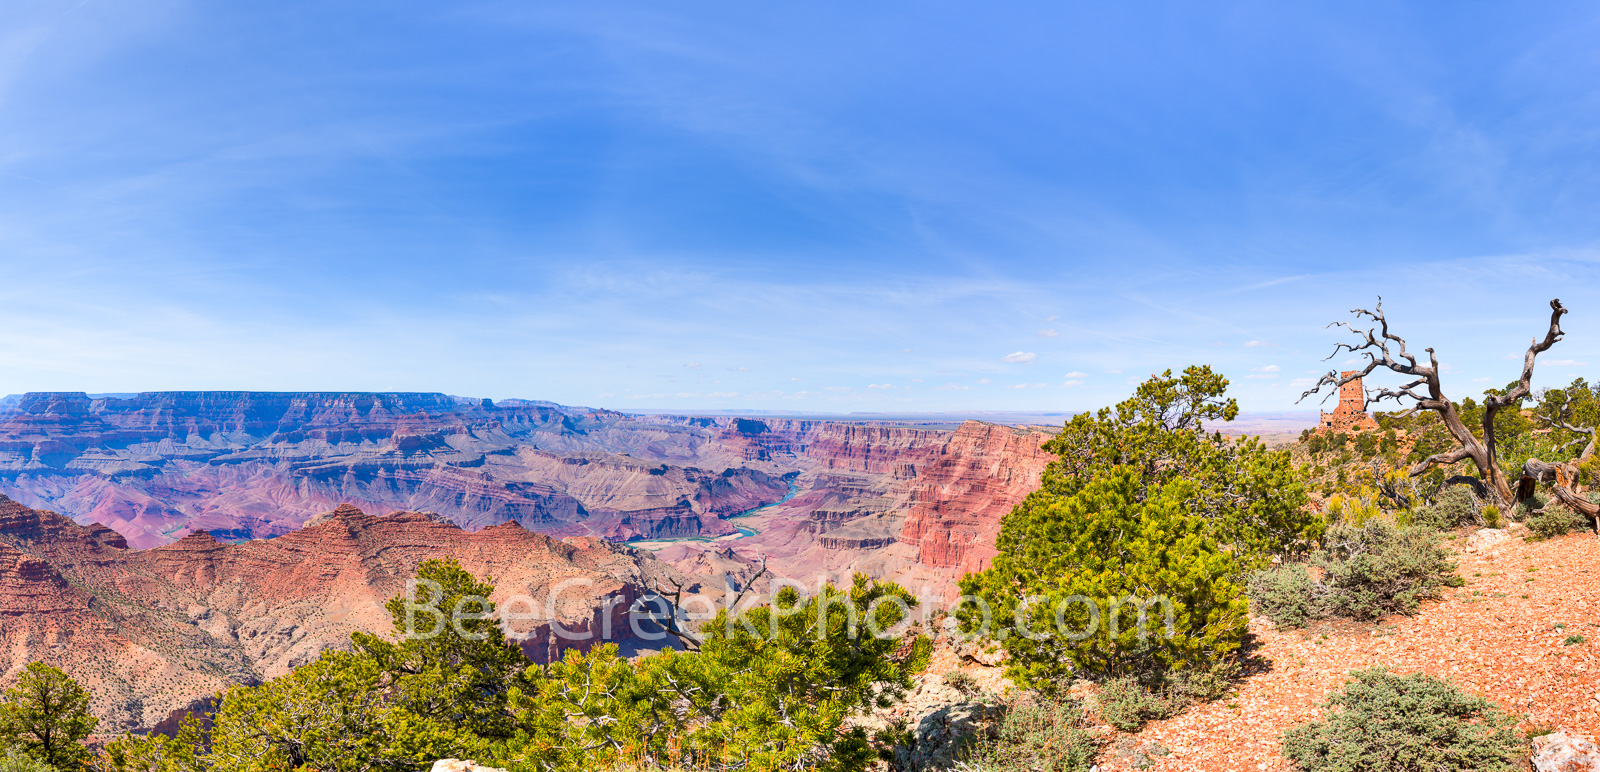 grand canyon, arizona, mountains, landscape, vistas, geology, images of grand canyons, photos of grand canyons, grand canyon pictures, desert, desert southwest, , photo